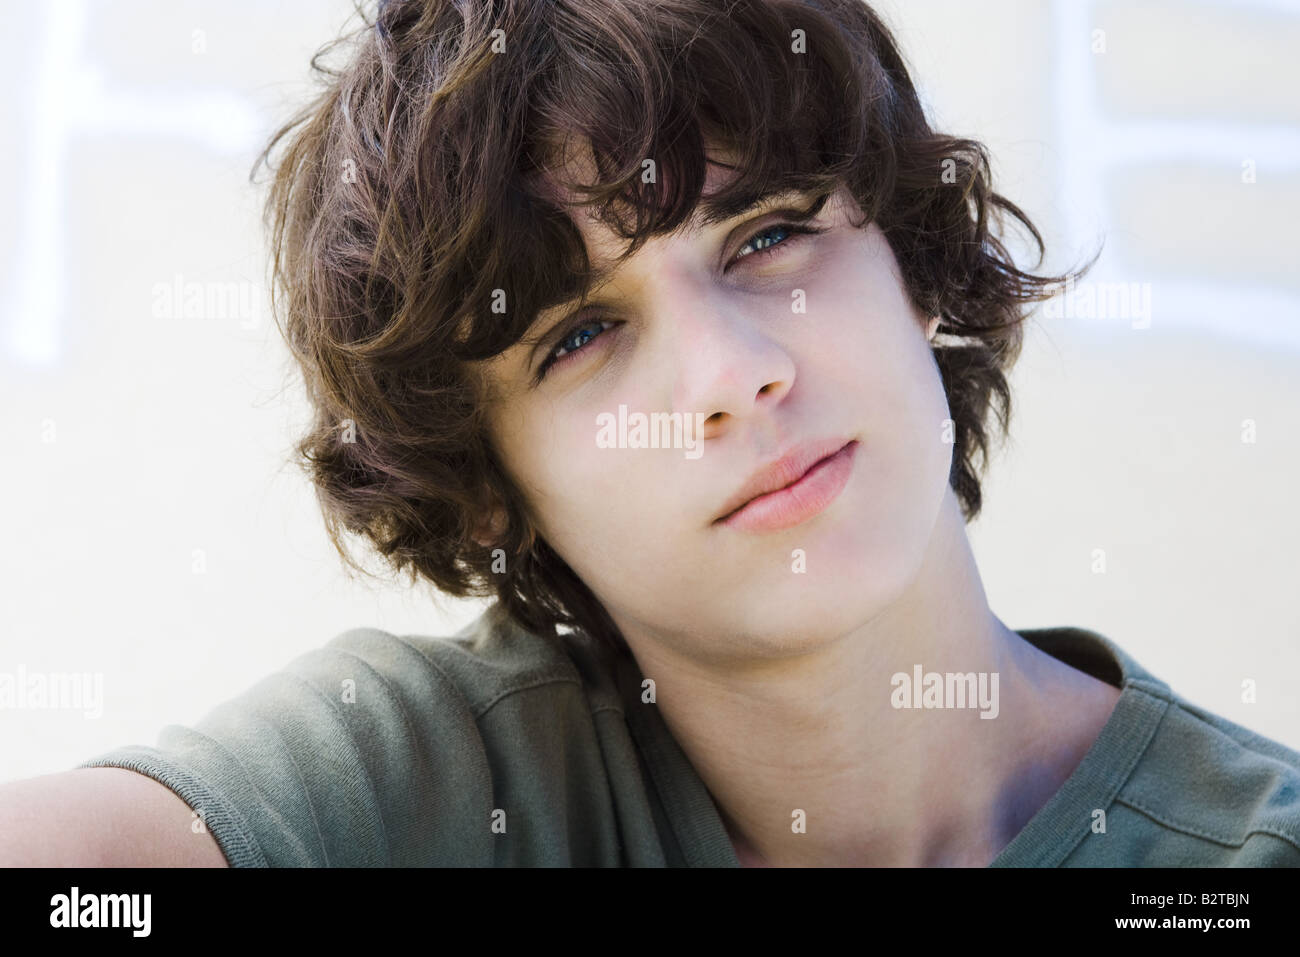 Teenage boy looking away, head tilted, portrait - Stock Image